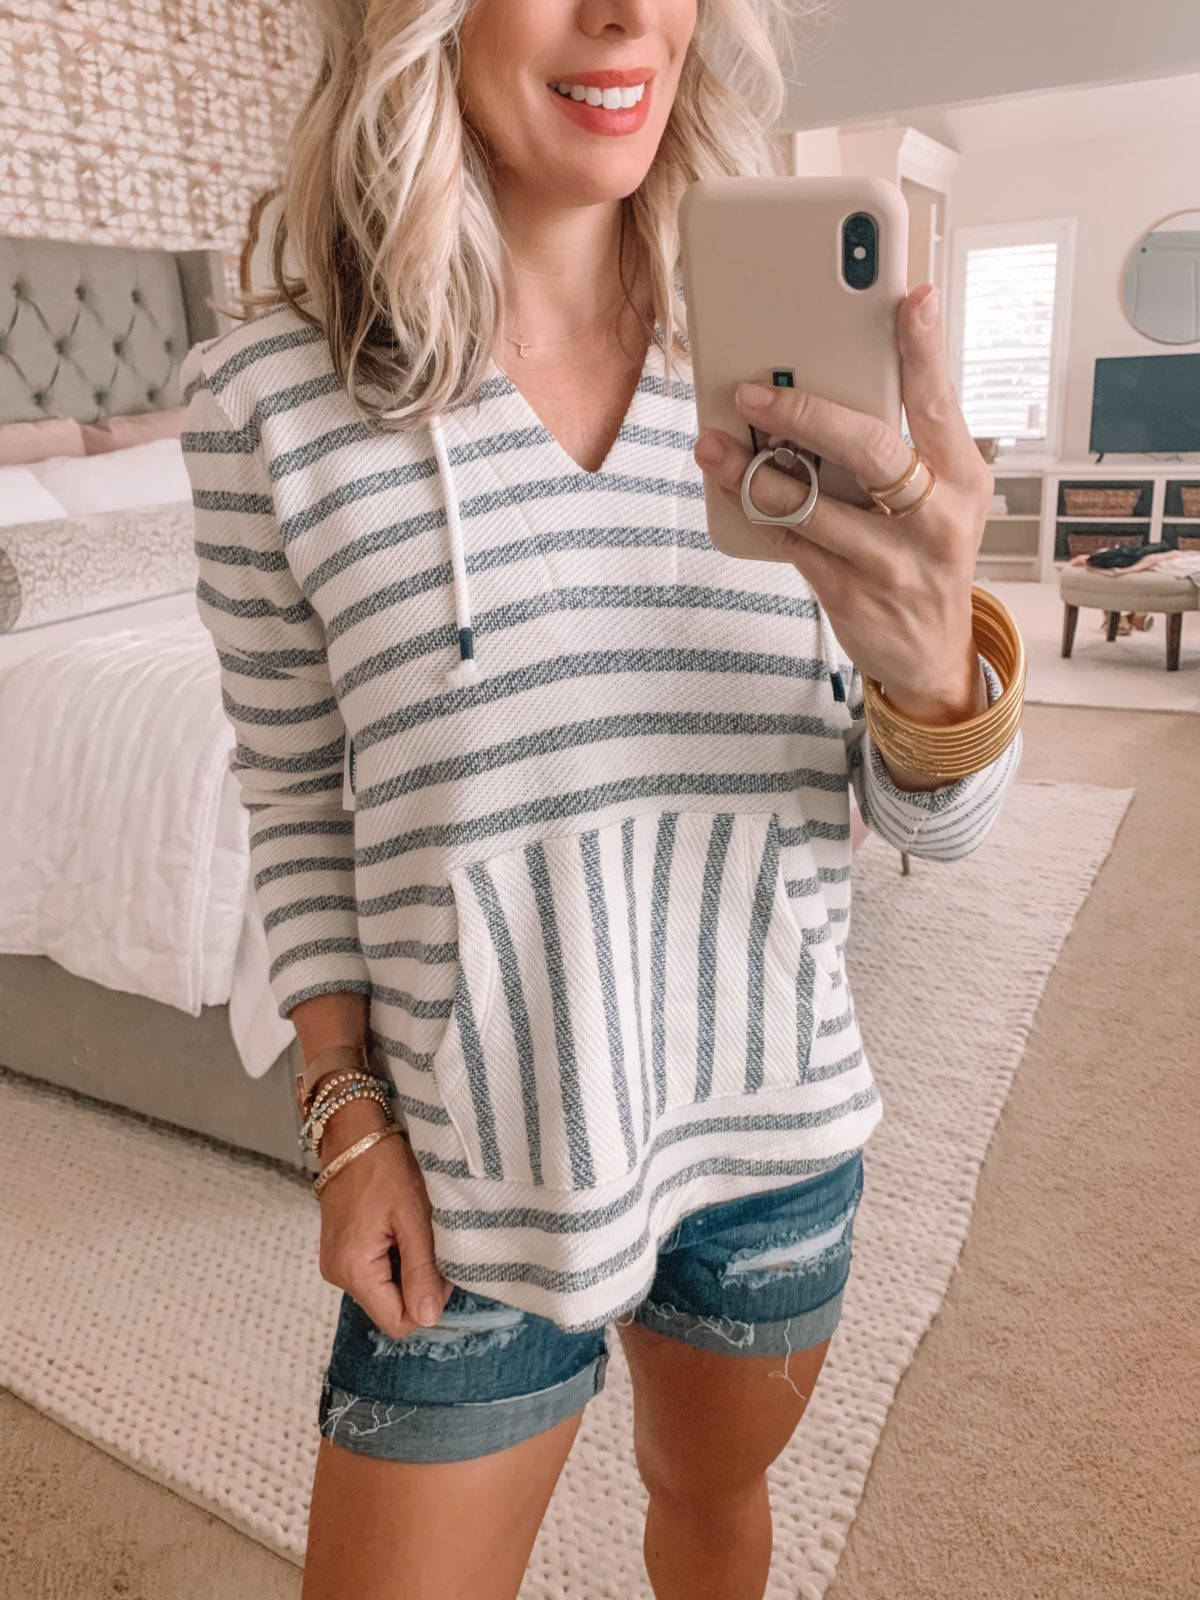 Dressing Room Finds Old Navy and Target, Striped Pullover, Denim Shorts